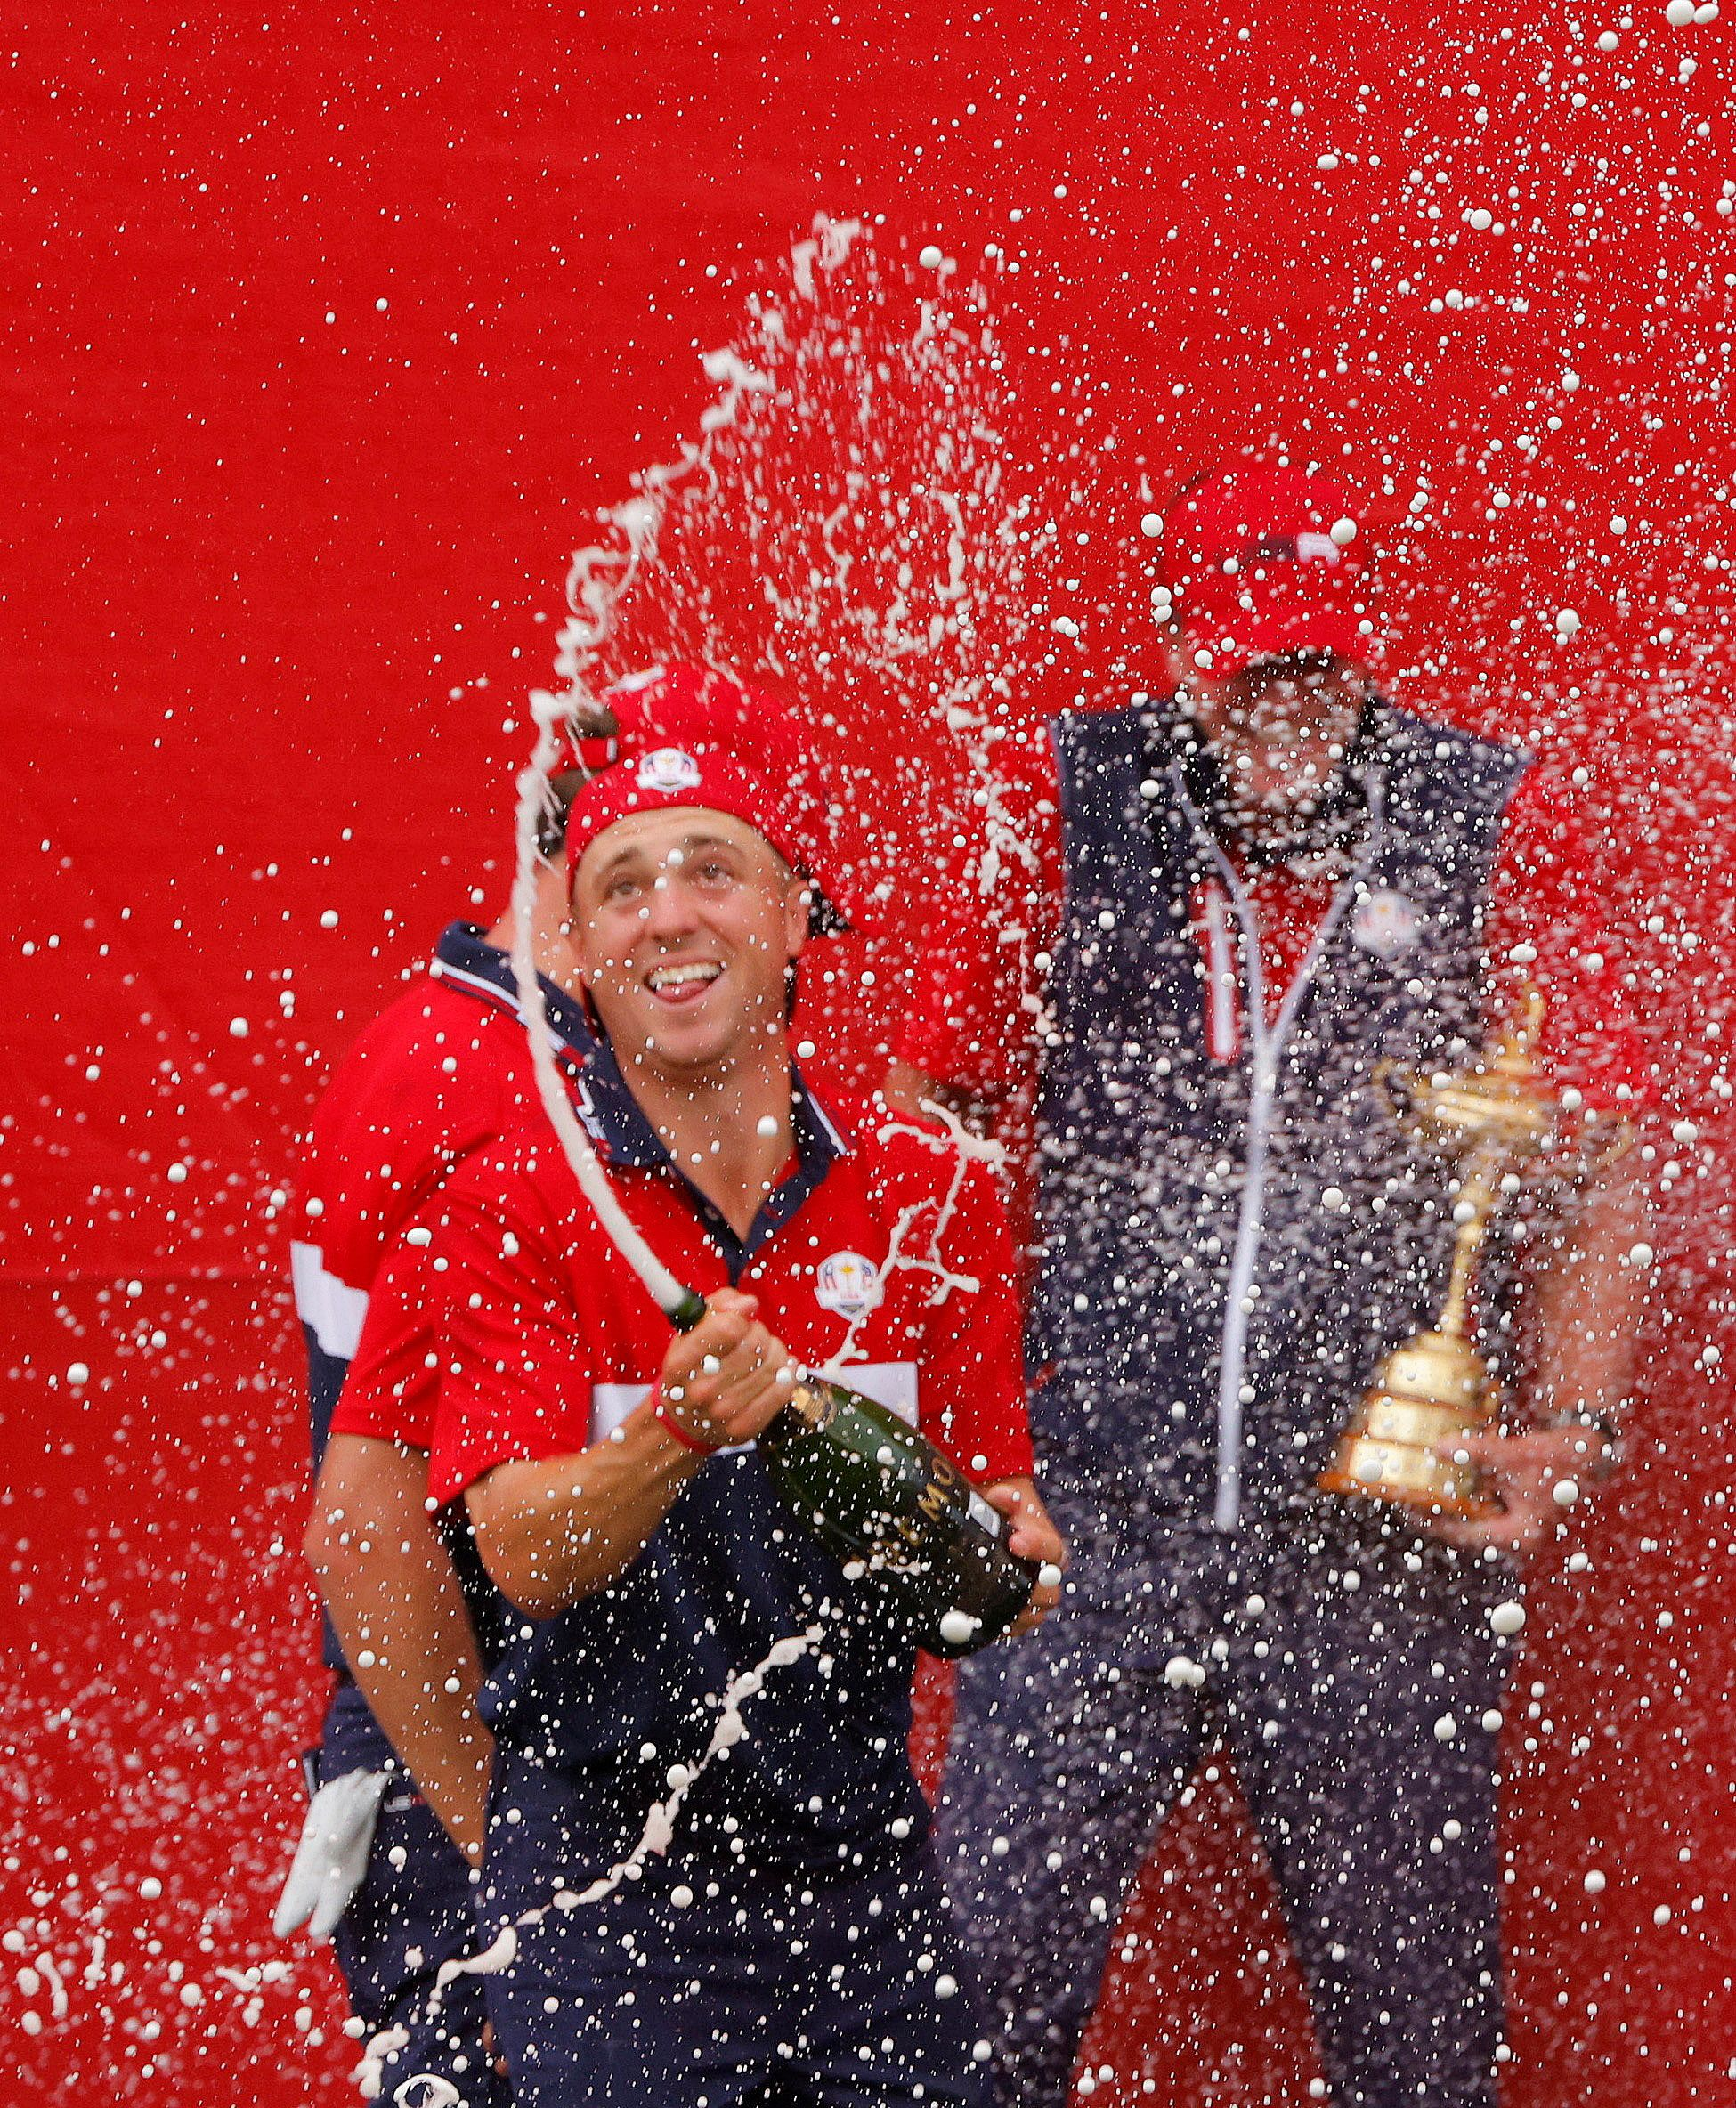 Golf - The 2020 Ryder Cup - Whistling Straits, Sheboygan, Wisconsin, U.S. - September 26, 2021 Team USA's Justin Thomas sprays sparkling wine as he celebrates after winning The Ryder Cup REUTERS/Brian Snyder